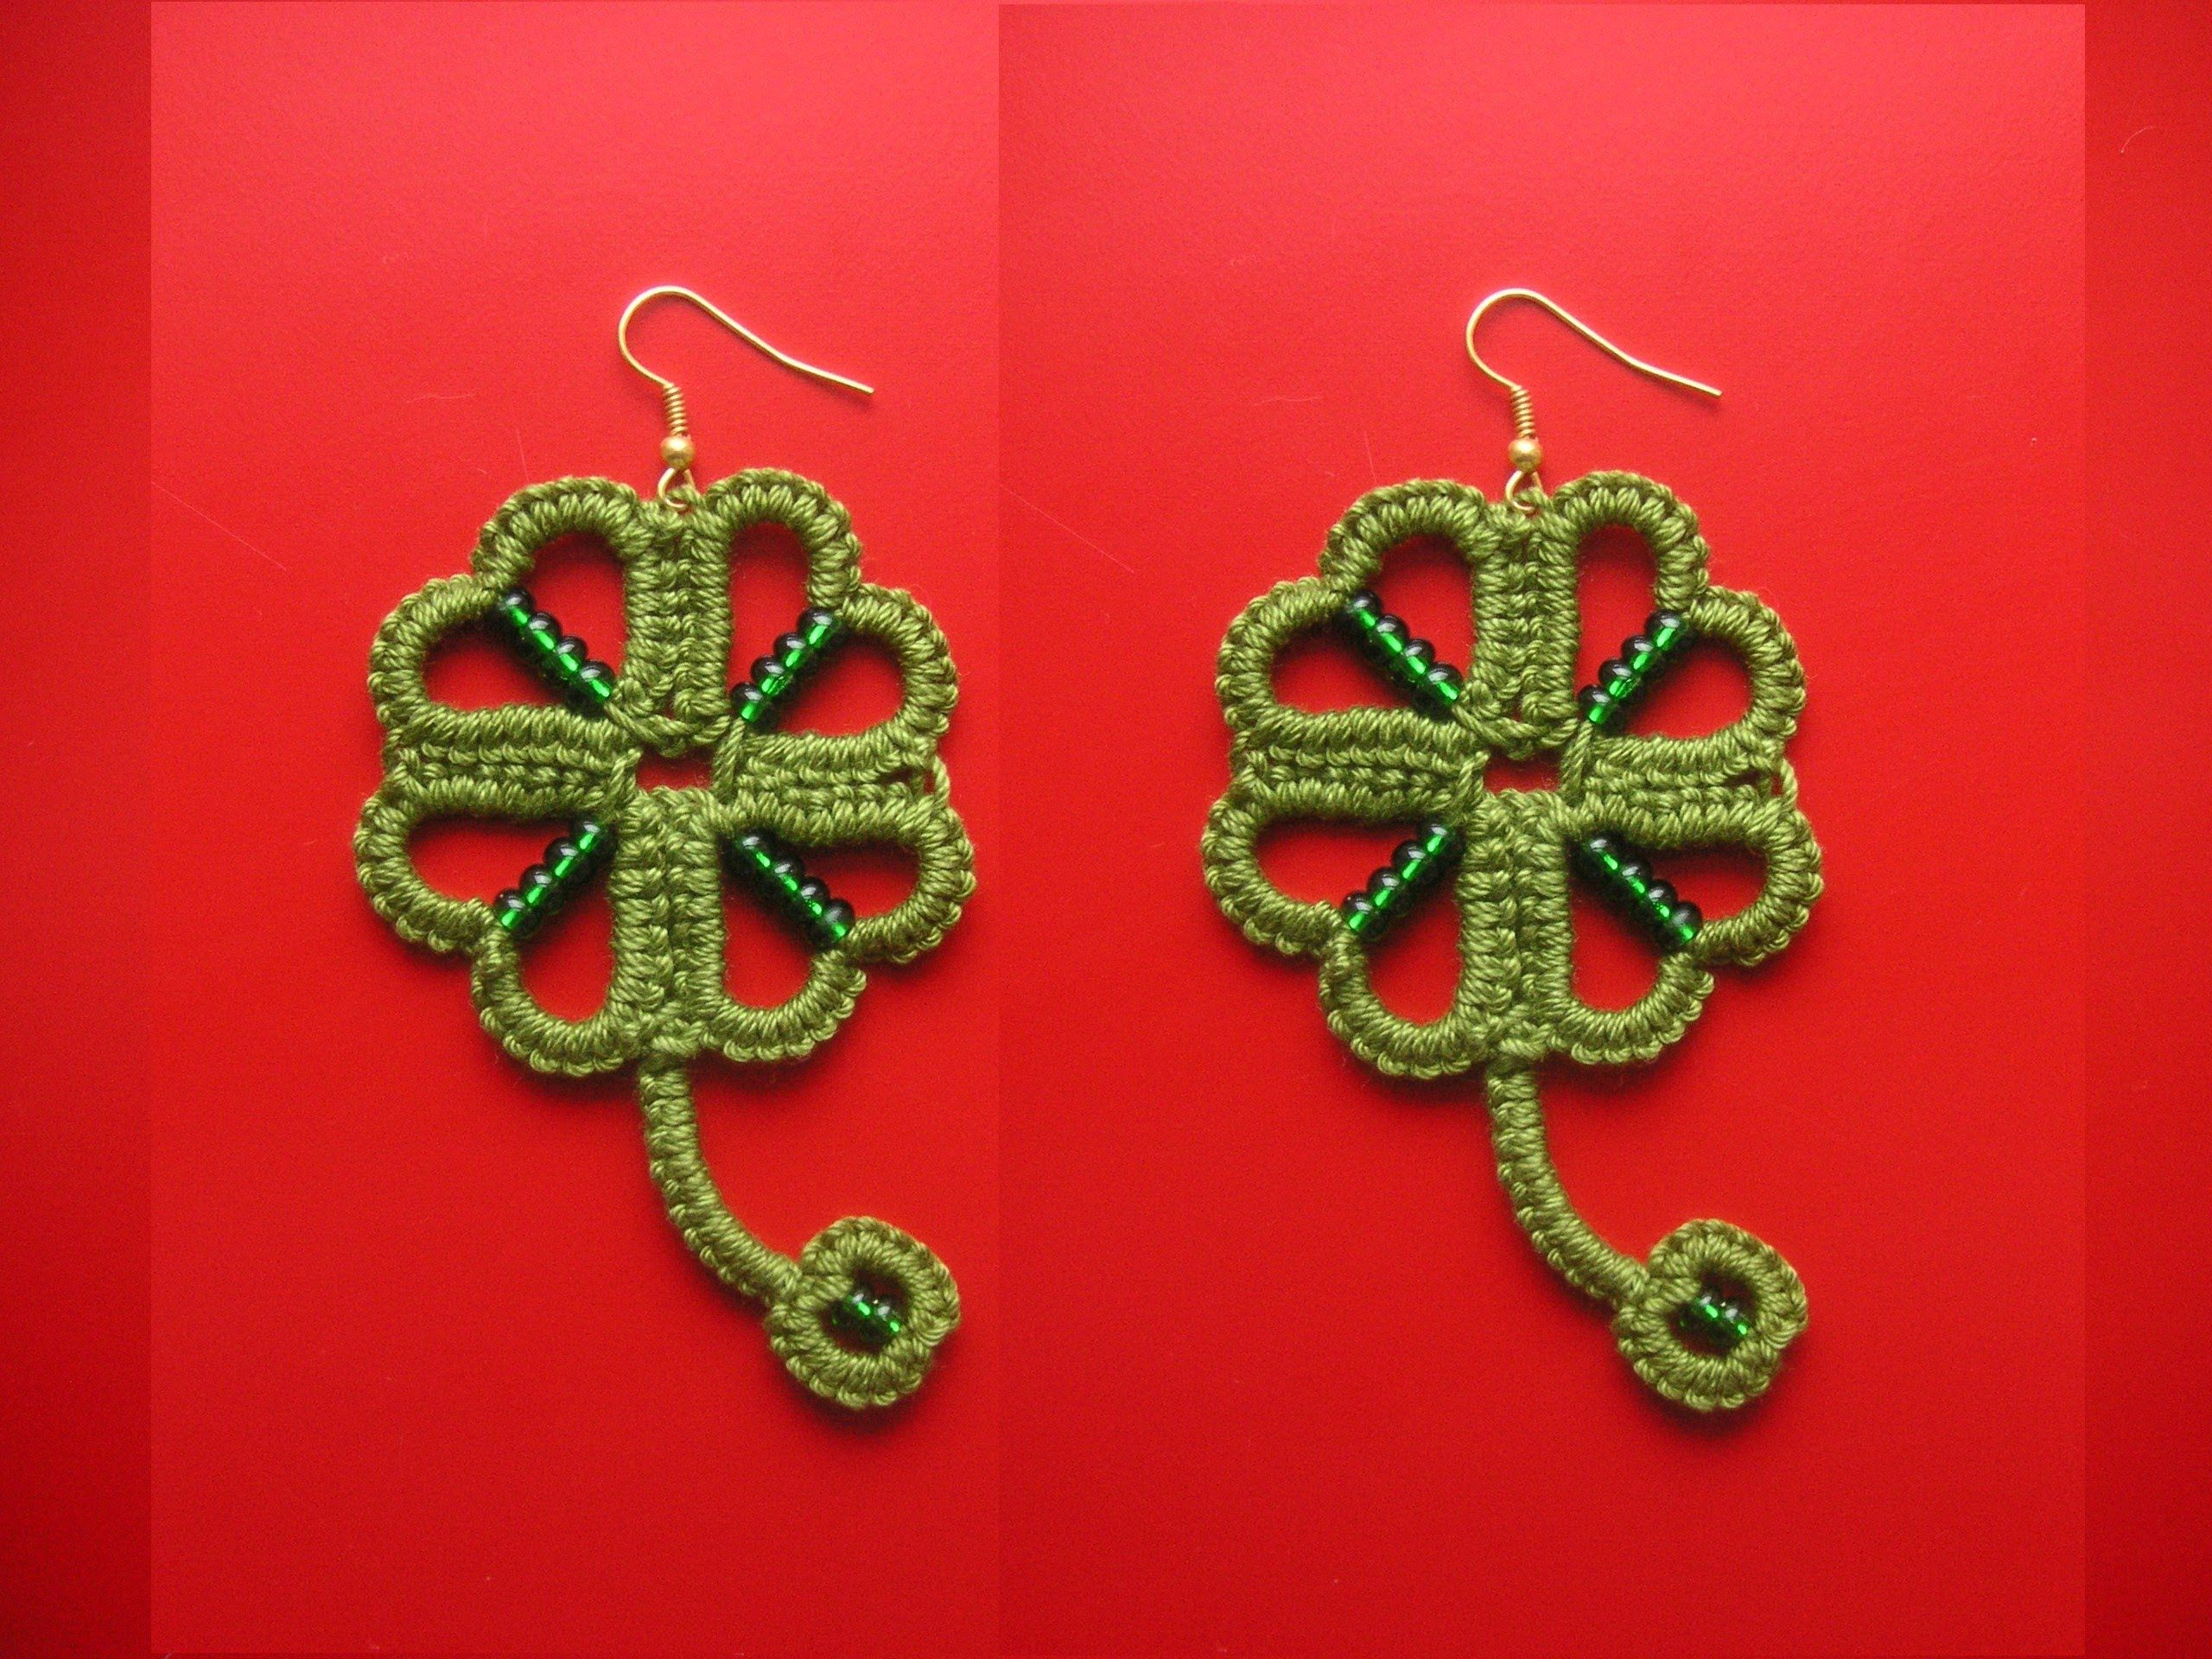 This Is The Spoken And Visual Instruction For Needle Tatting My Simple Flower Pendant